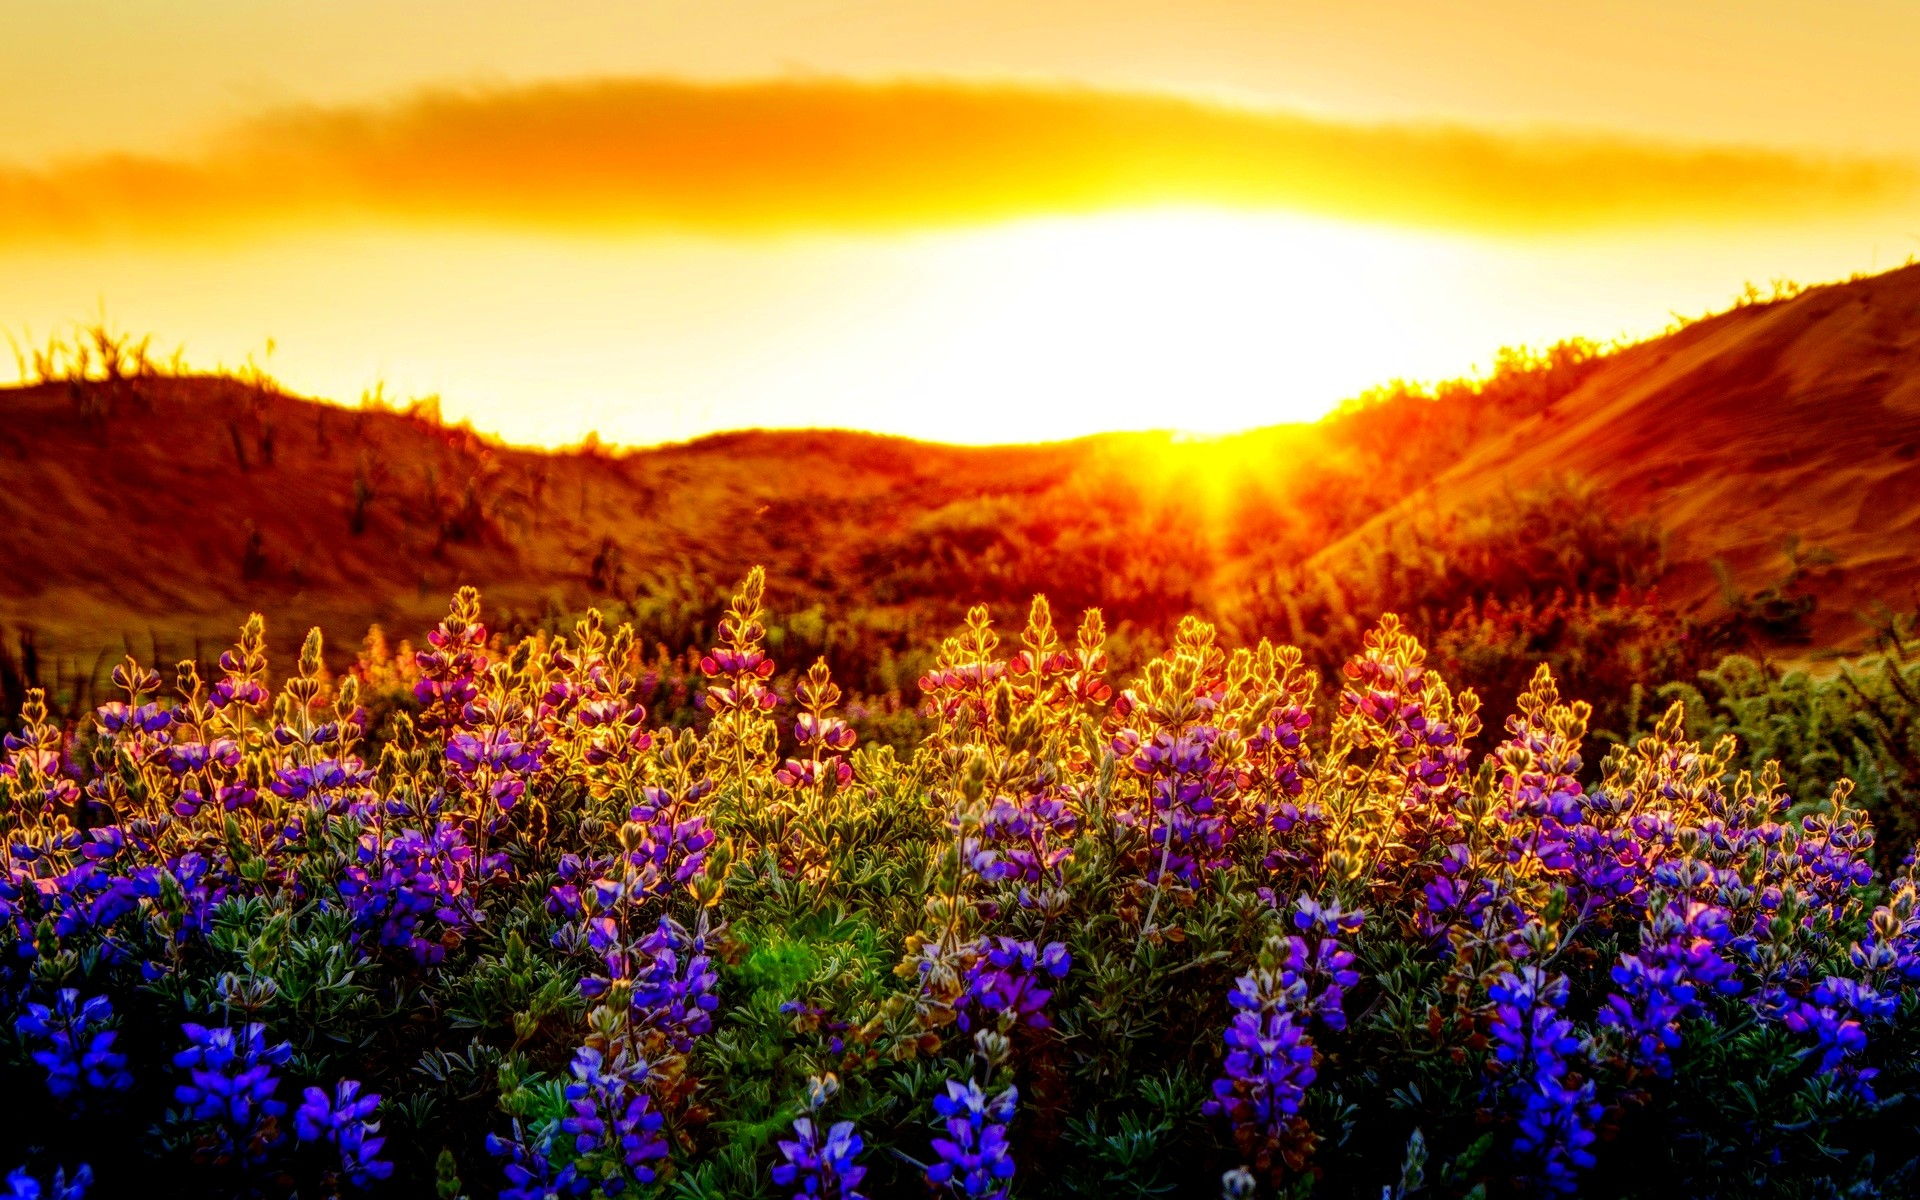 Spring Sunset Background (23 Wallpapers)